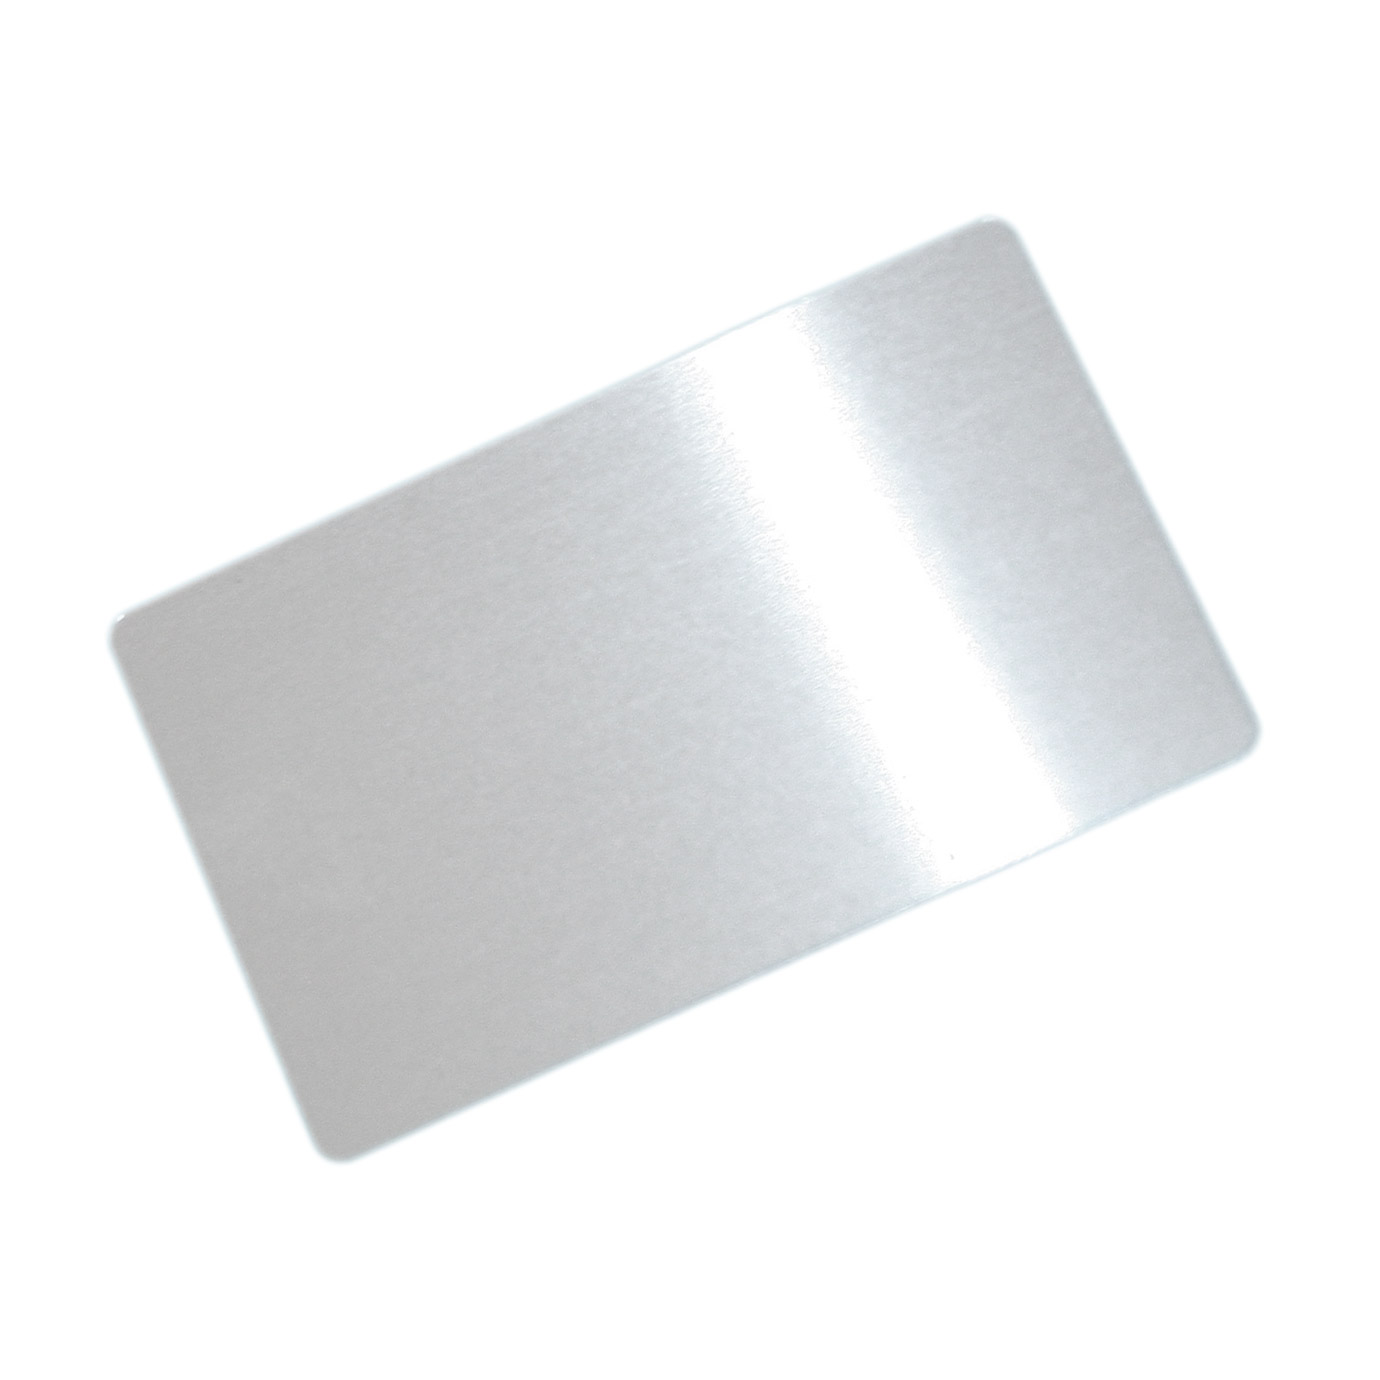 Aluminium business card for sublimation overprint Dimension: 8,5 x 5 ...